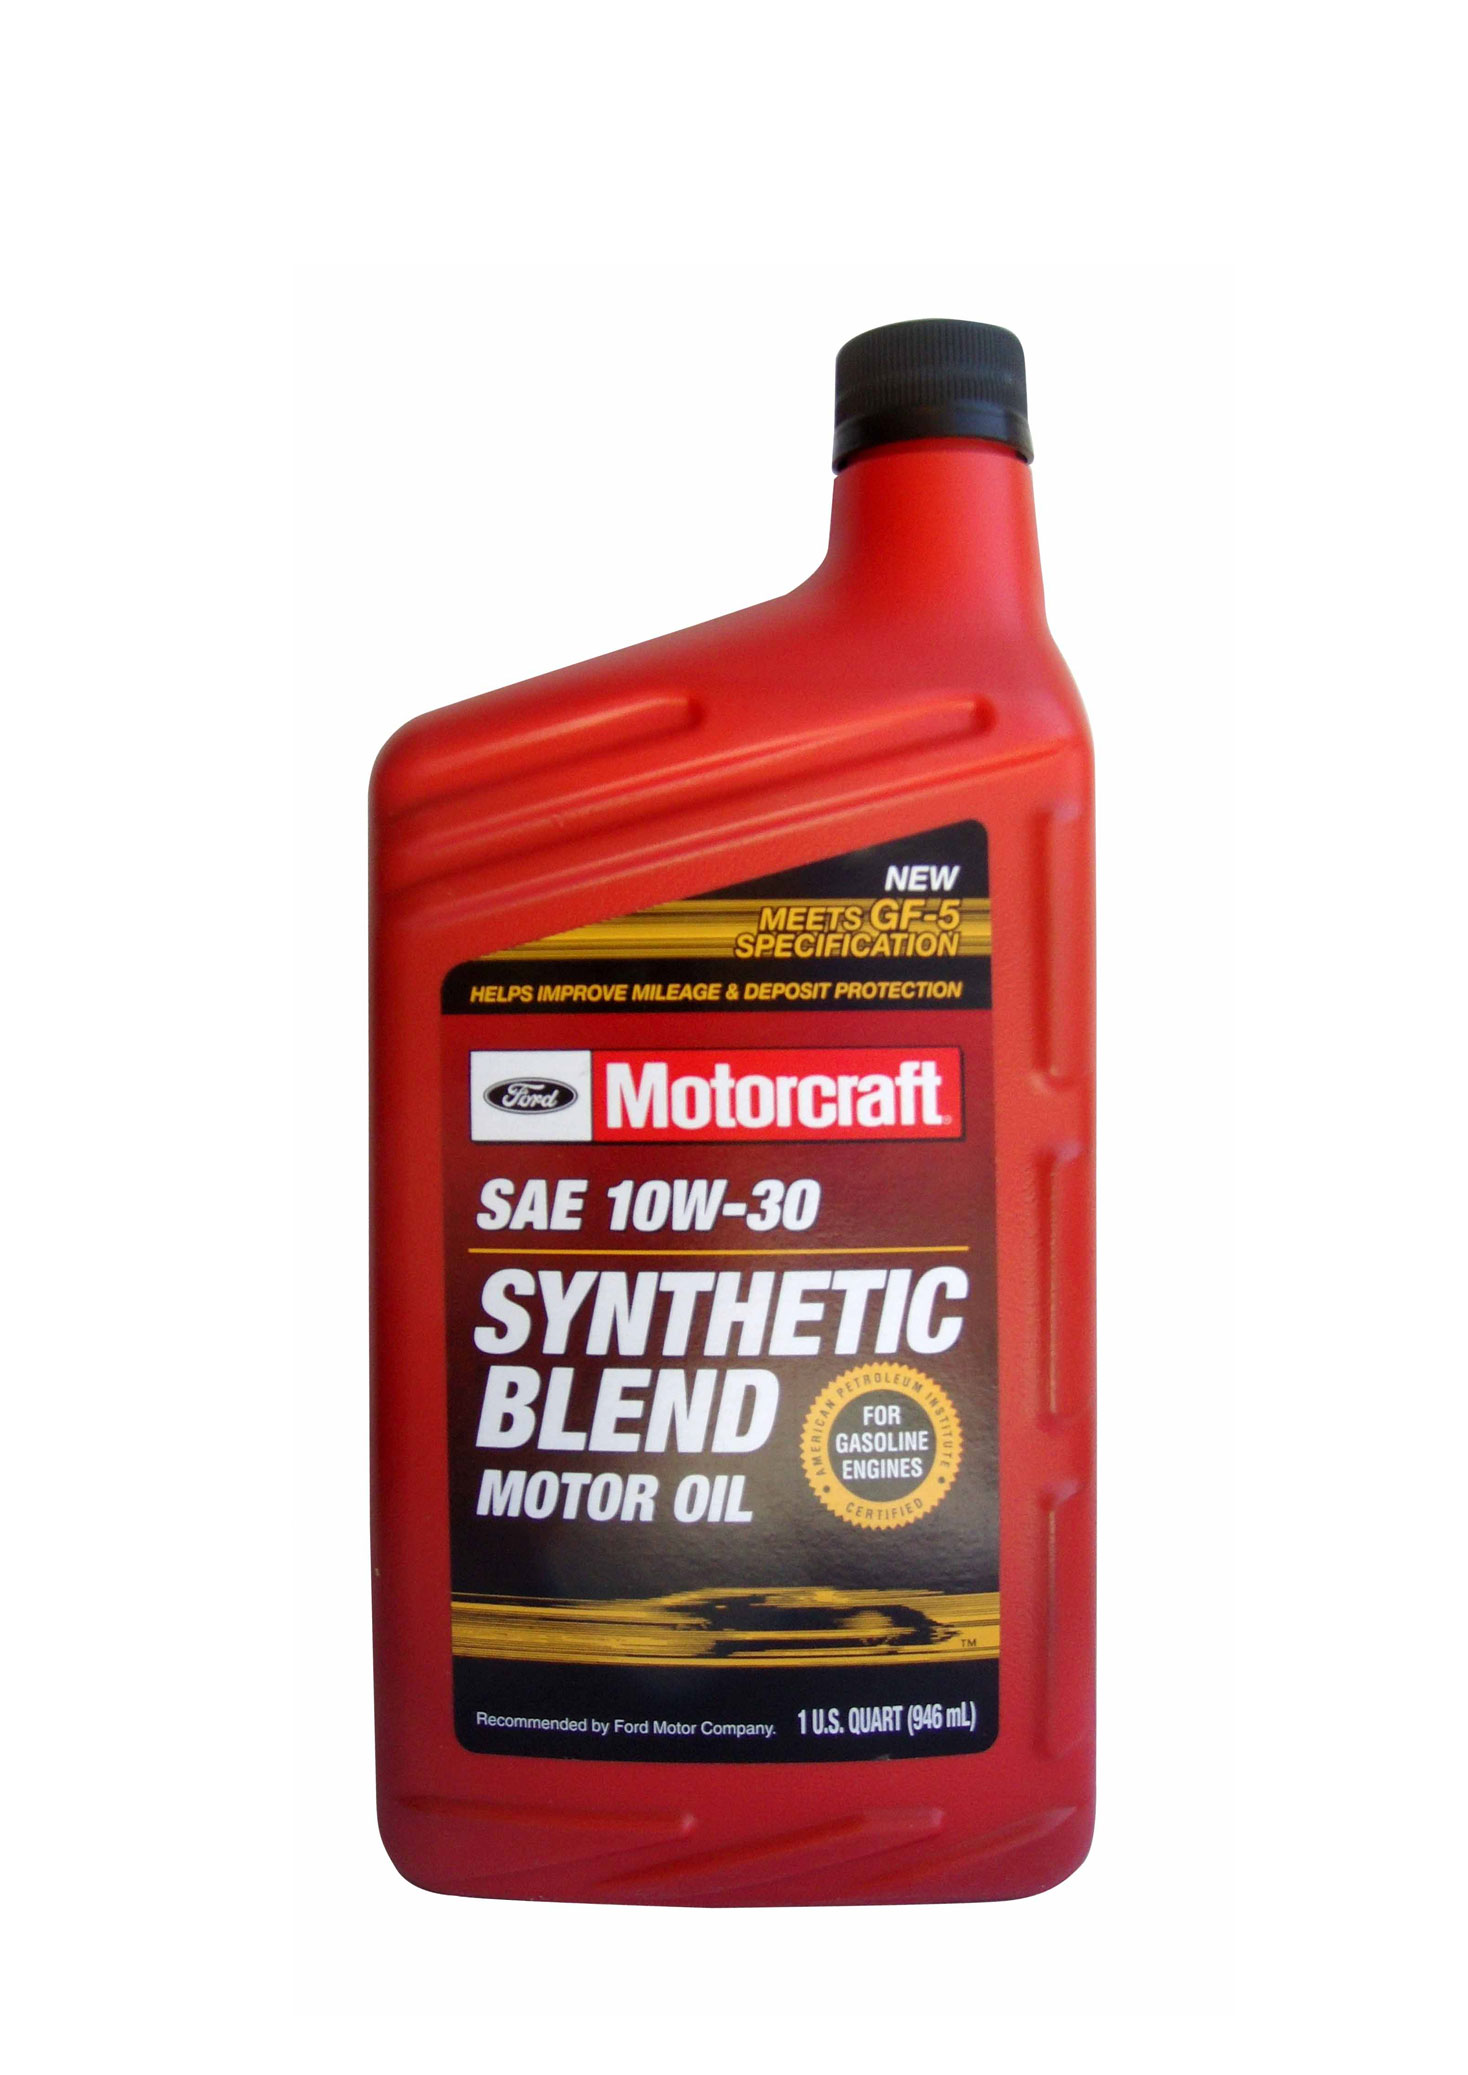 for Motorcraft synthetic blend motor oil